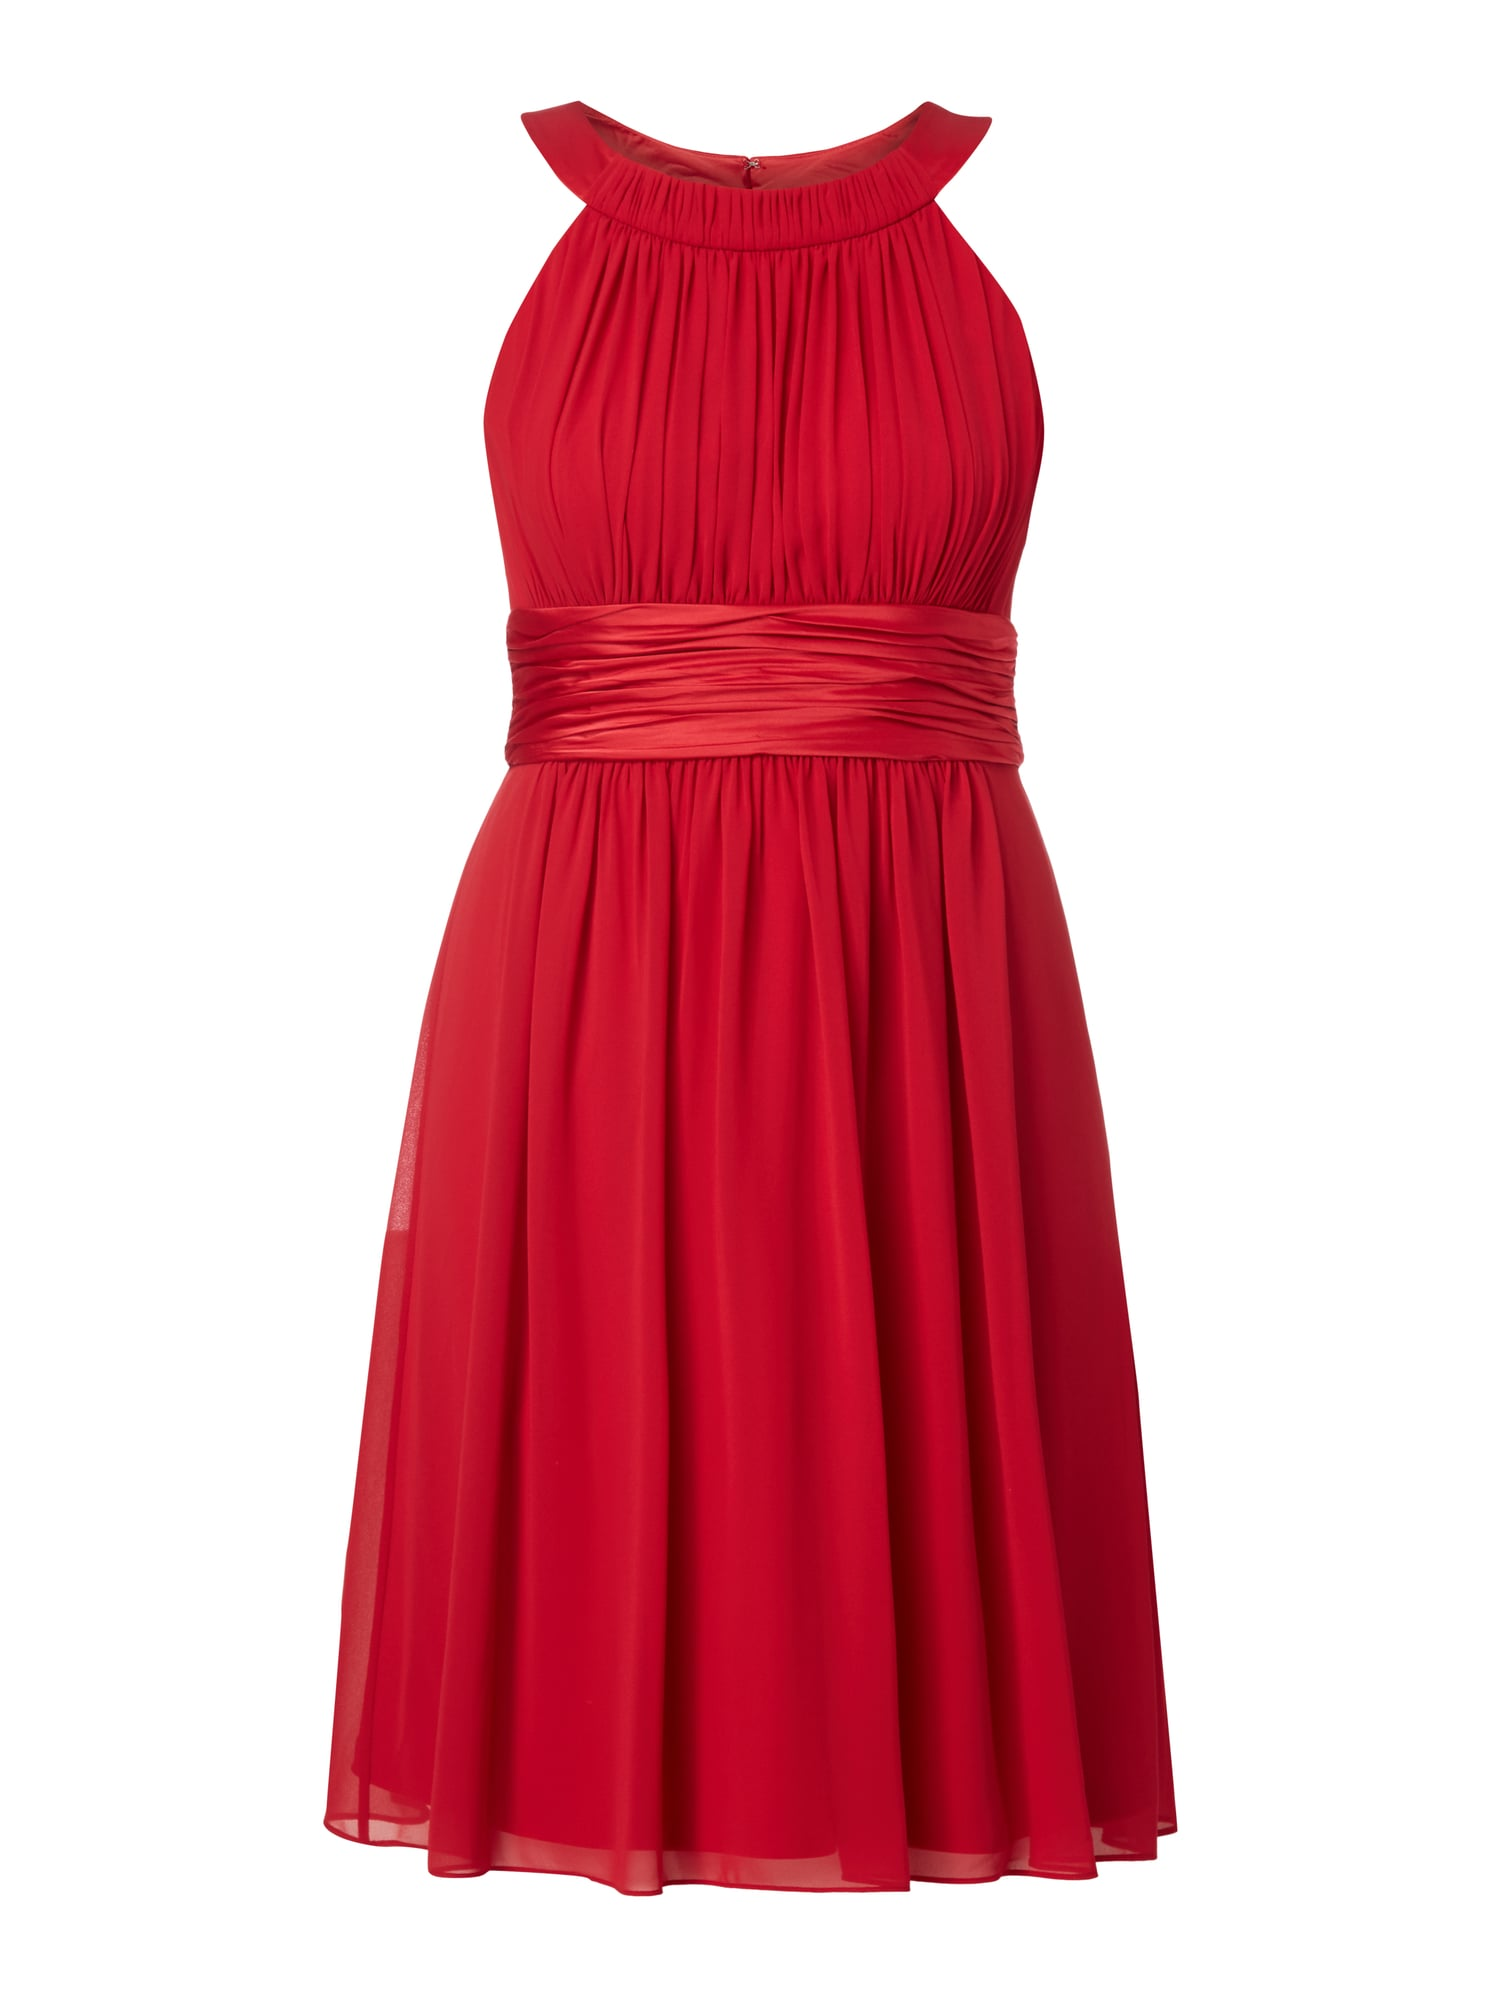 JAKES-COCKTAIL Cocktailkleid mit Collierkragen in Rot online kaufen ...